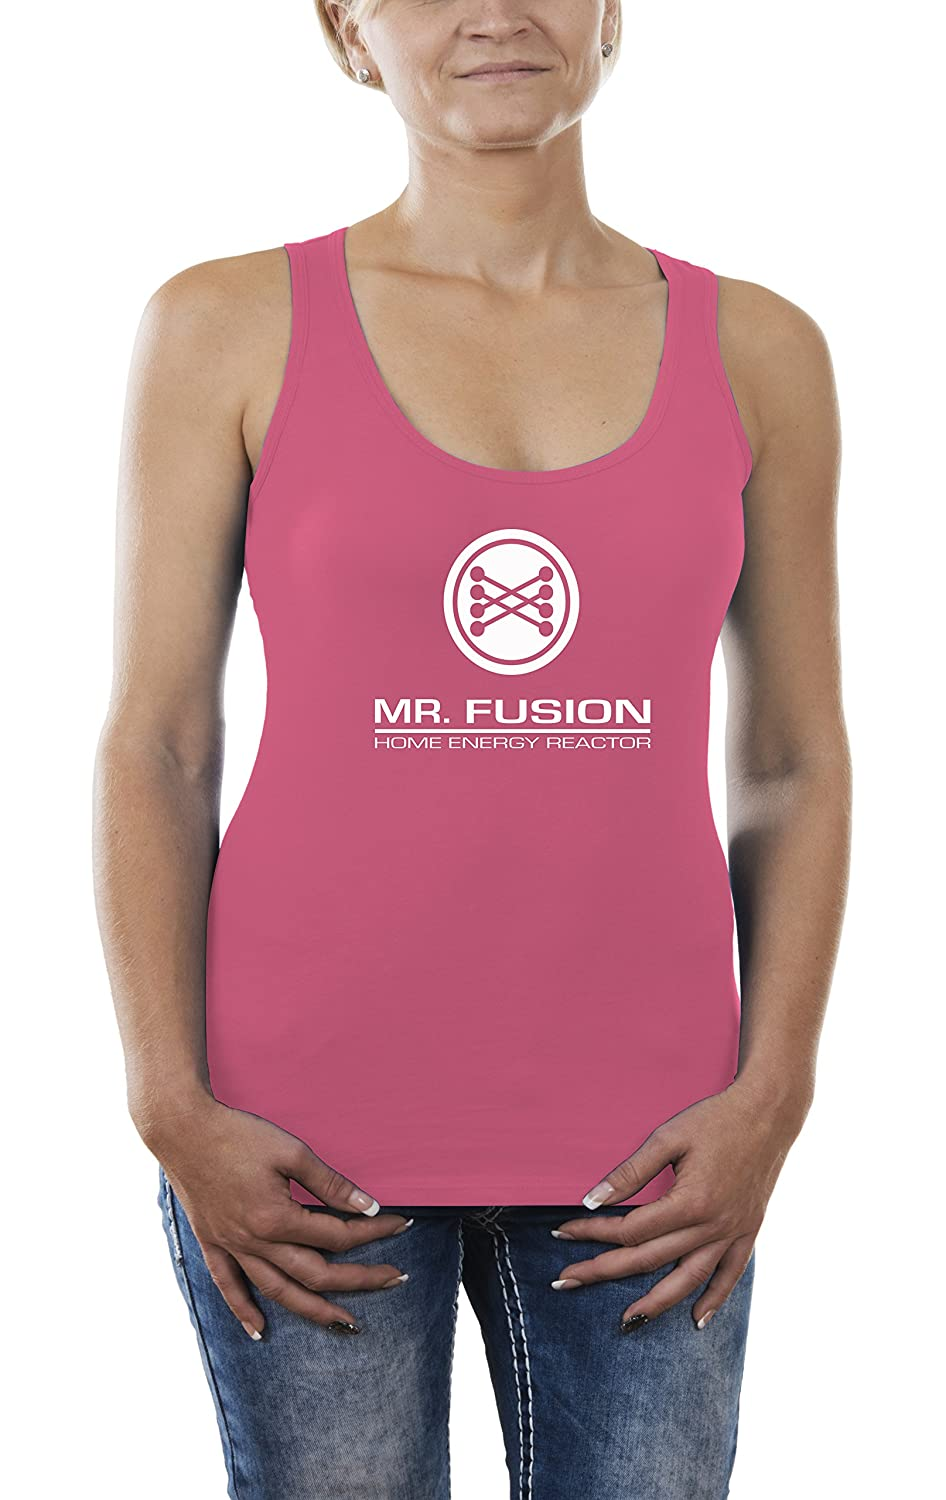 Touchlines Women's Mr Fusion Reactor Tops Outlet In China Online Cheap Price Visa Payment Clearance Cheap Online krDqTHwd